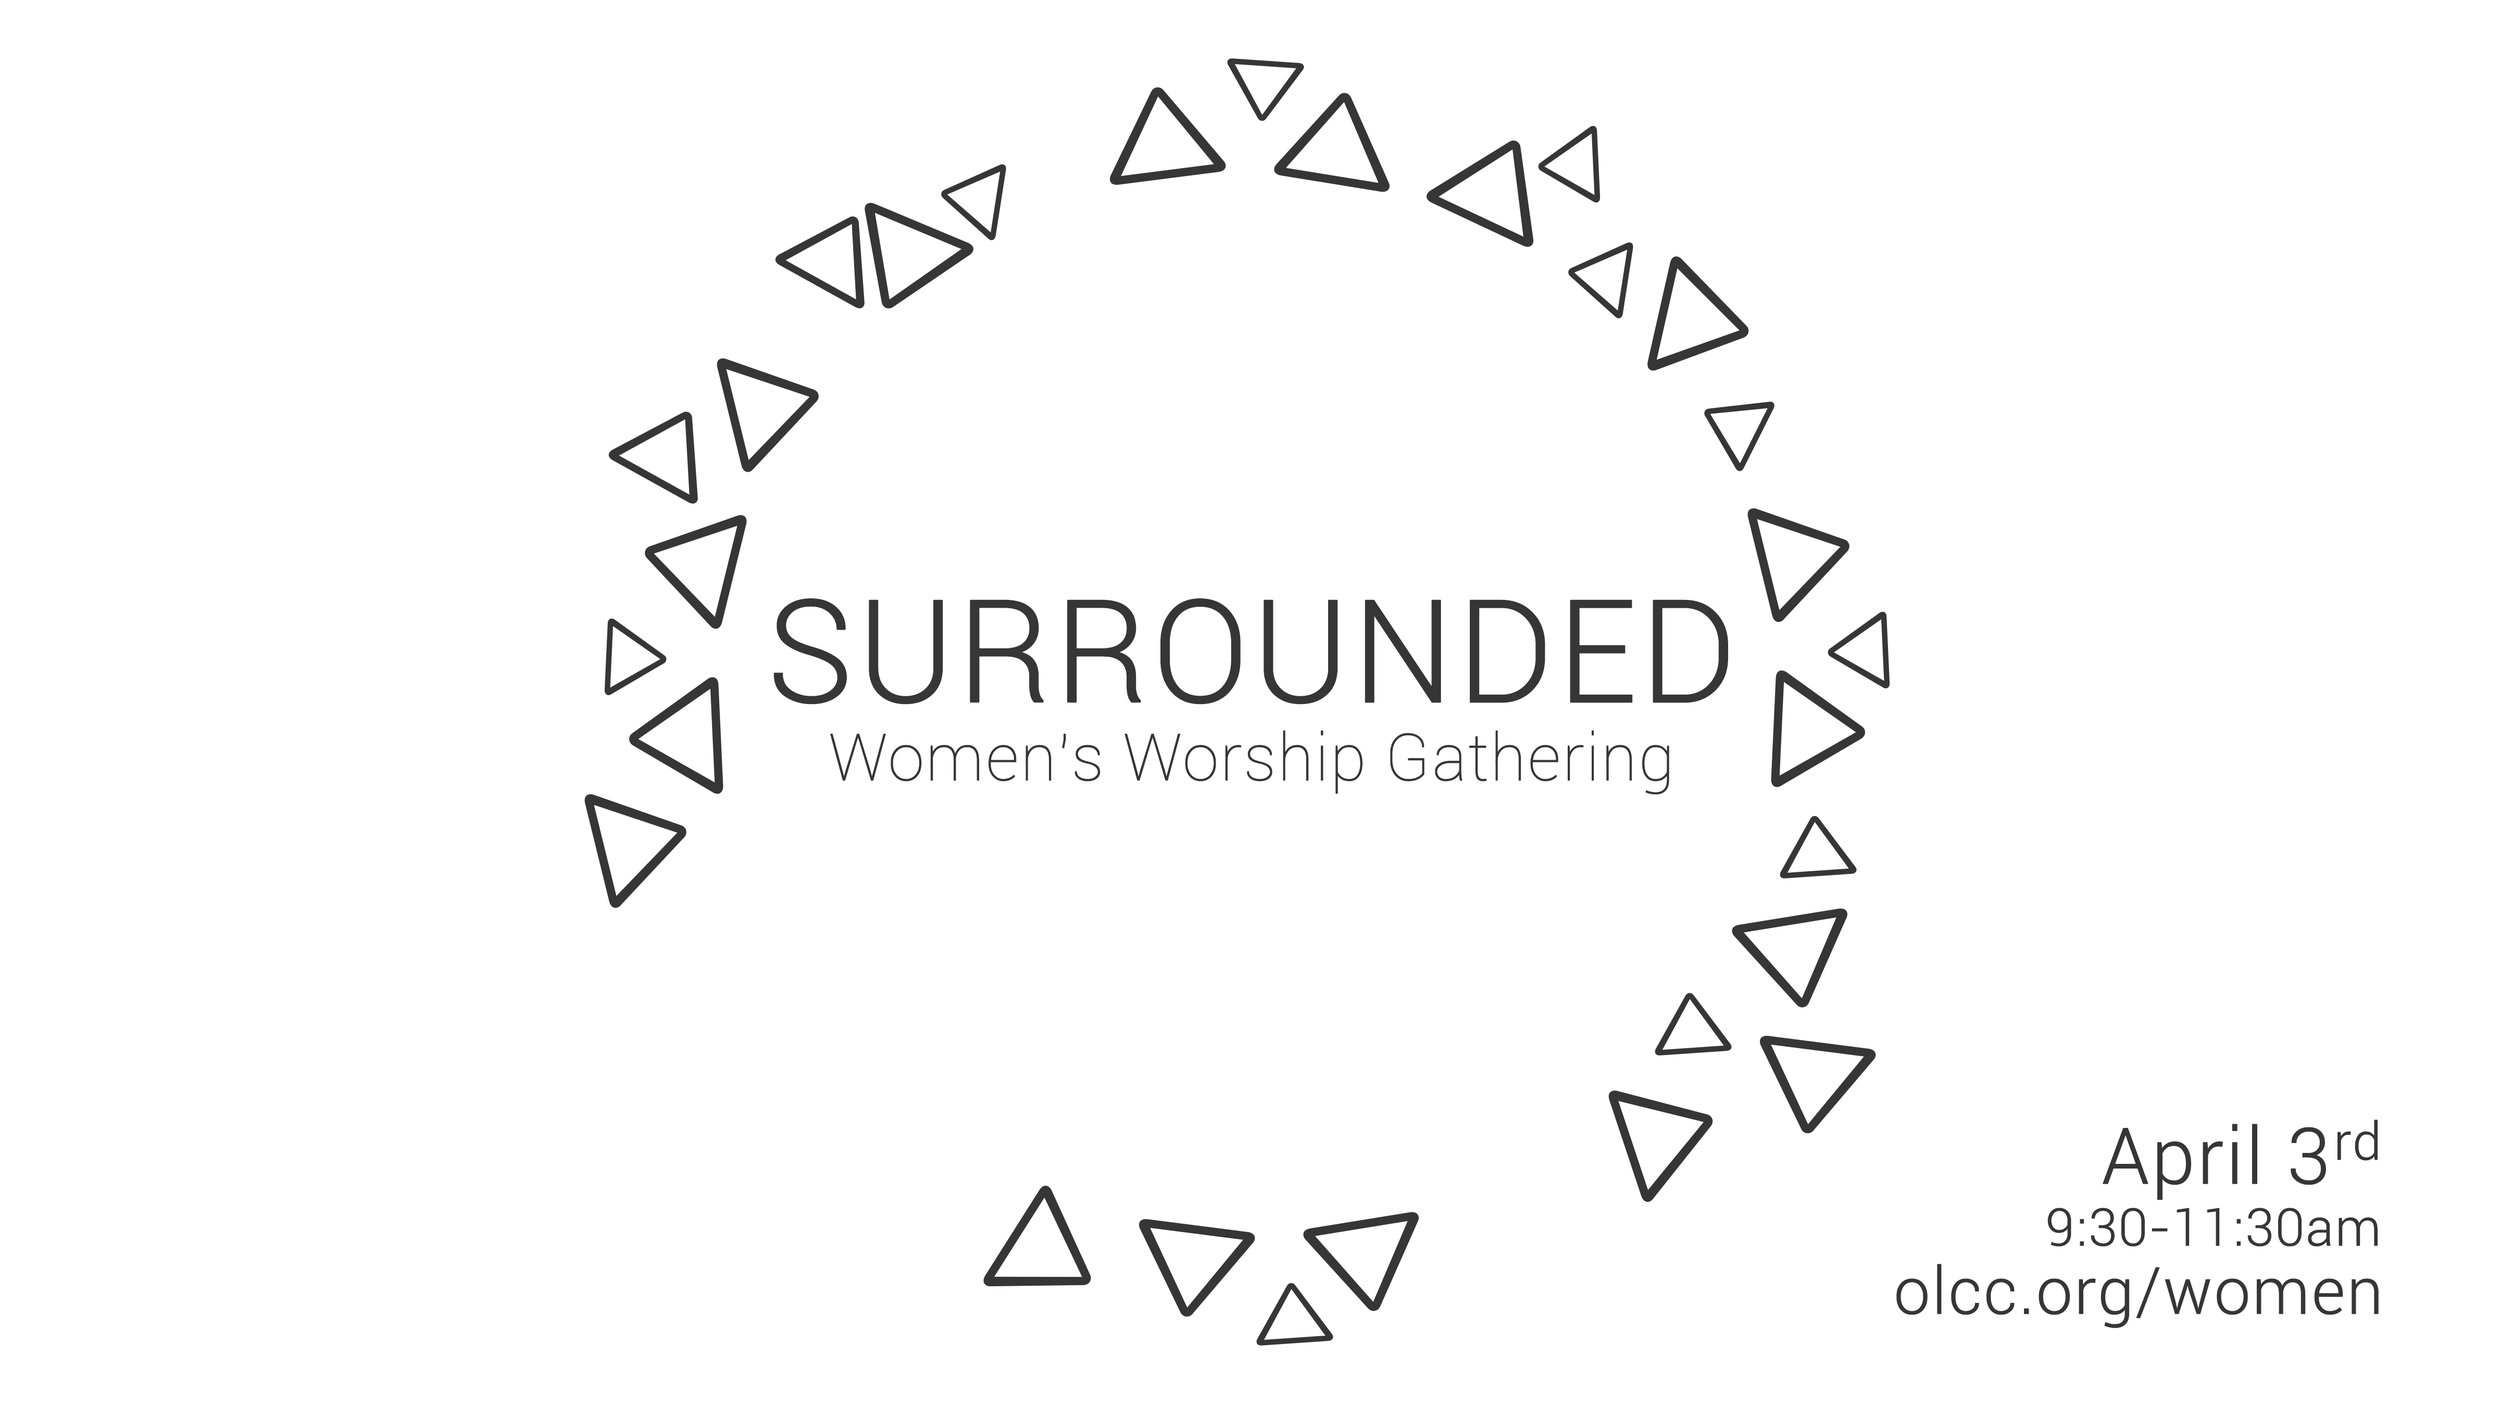 Surrounded.jpg